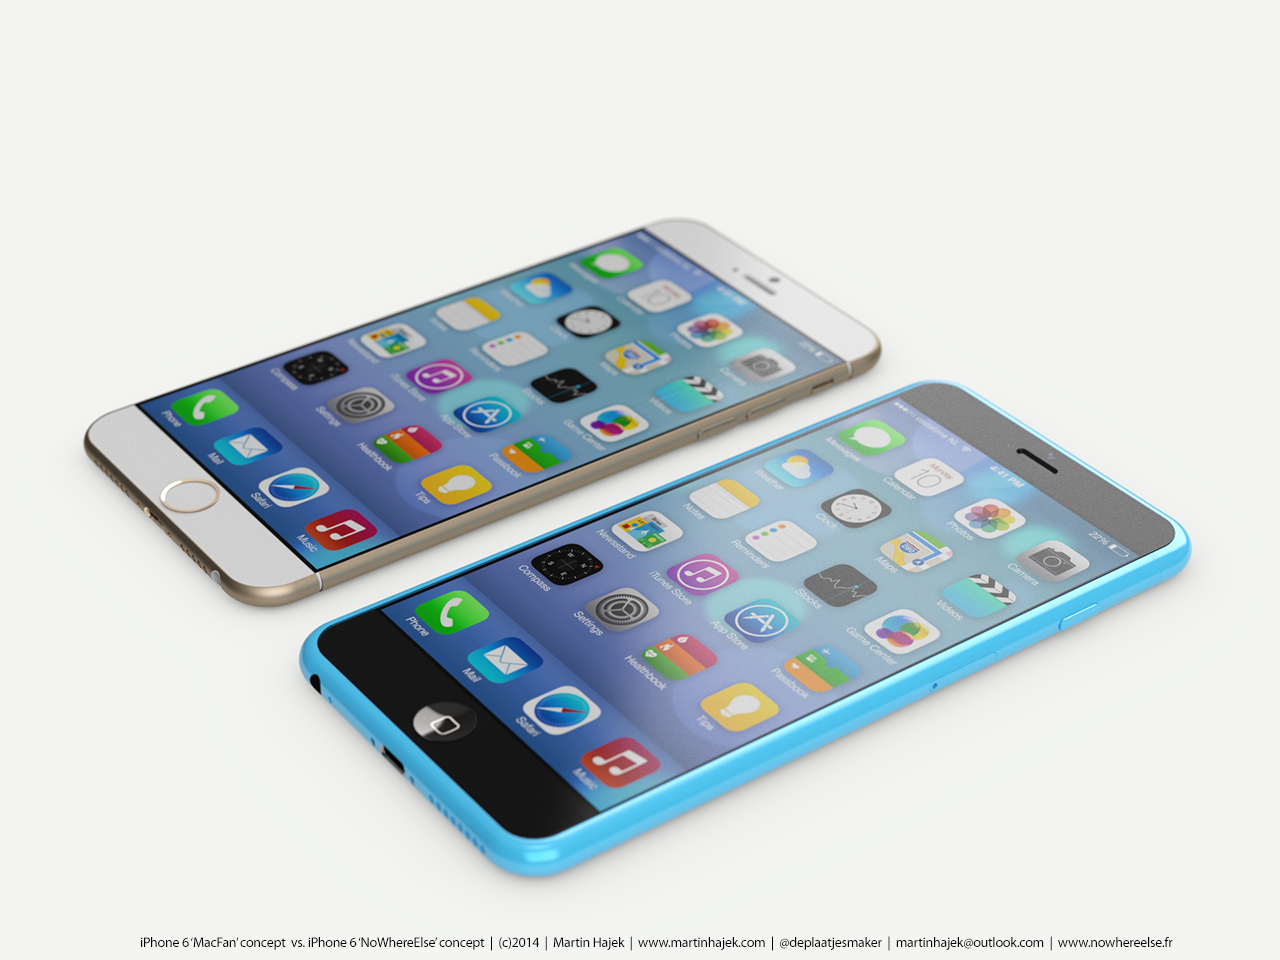 A Four Inch iPhone 6c Could Be On The Way A Four Inch iPhone 6c Could Be On The Way new photo